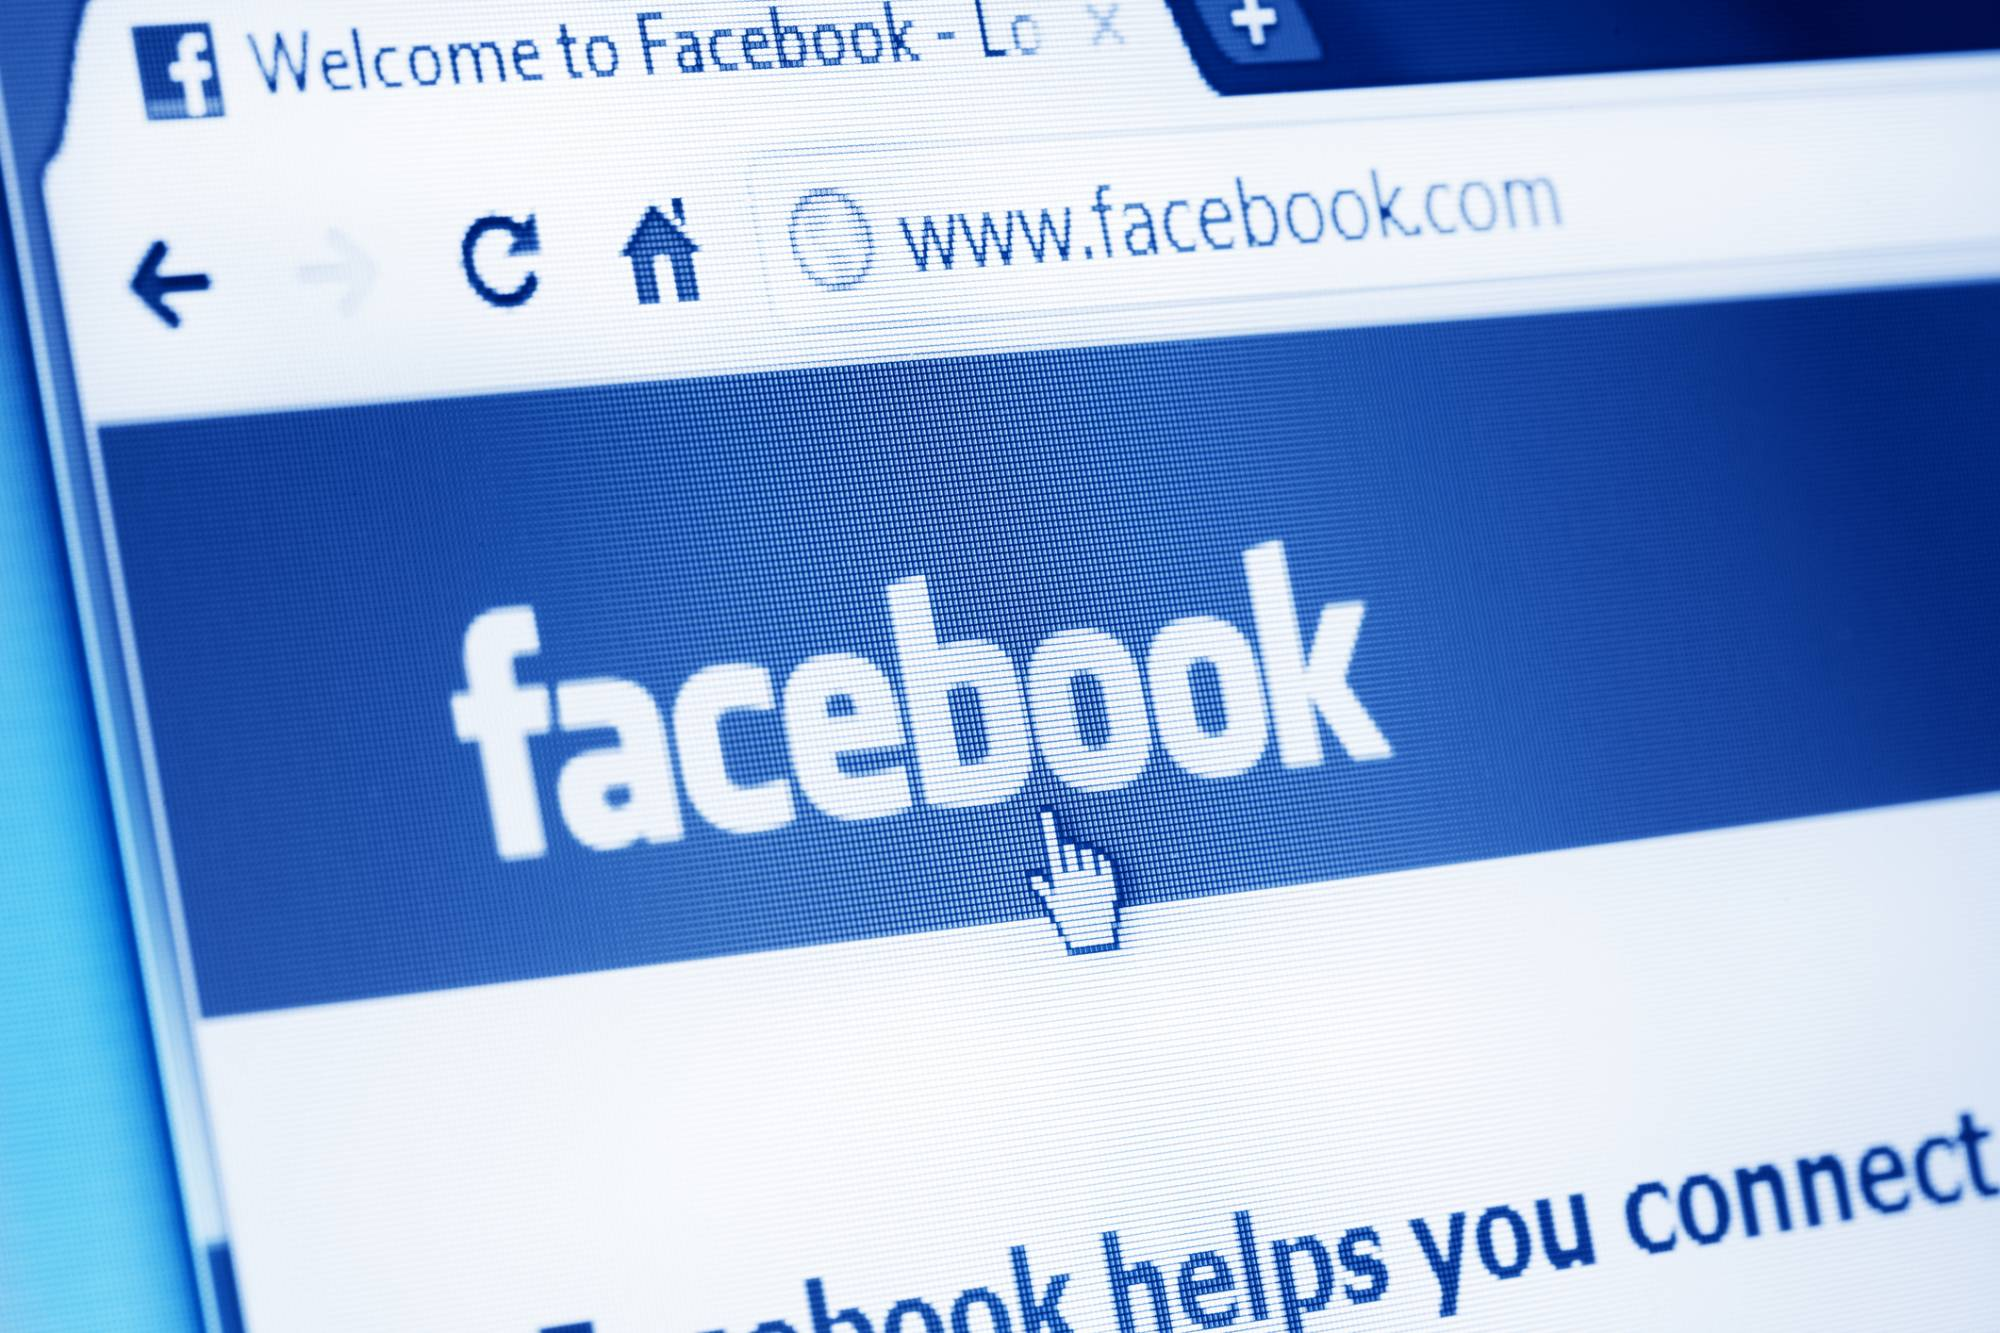 Facebook Hack Compromised 30 Million People, Exposing Phone Numbers, Emails